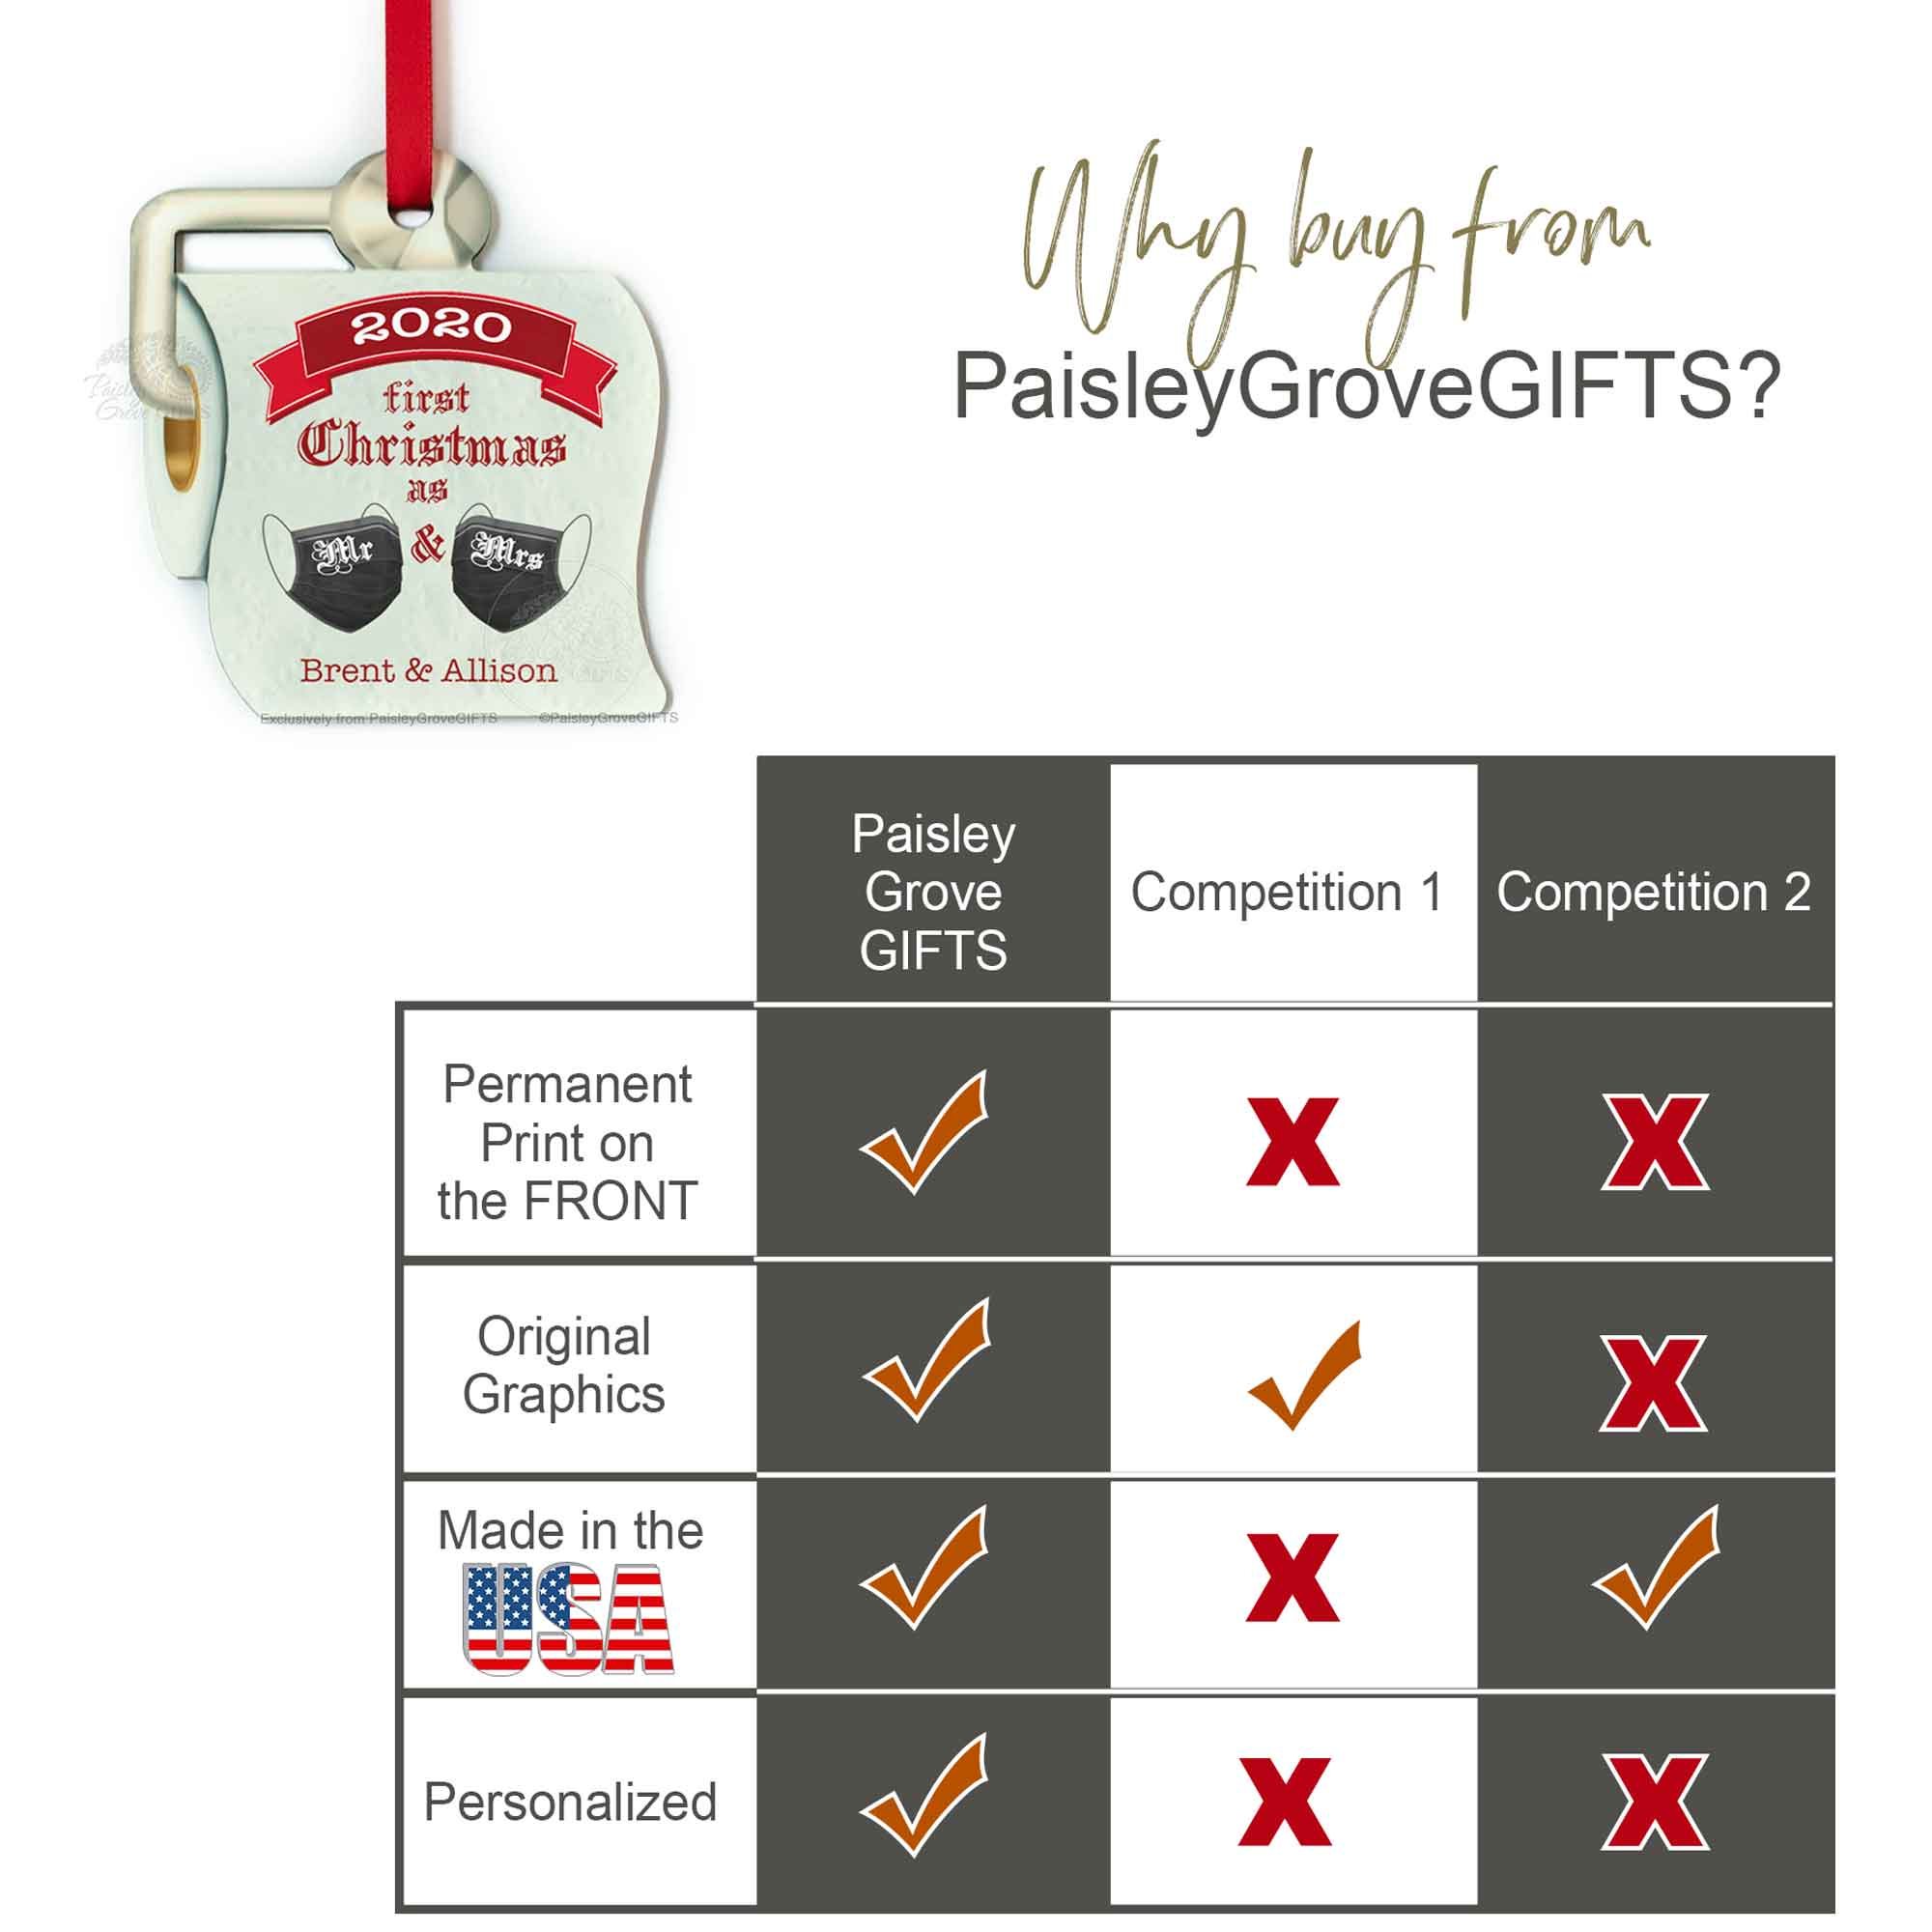 CopyrightPaisleyGroveGIFTS S525f2 Quality Ornament Superior to Others, Comparison Chart for Toilet Paper Ornament